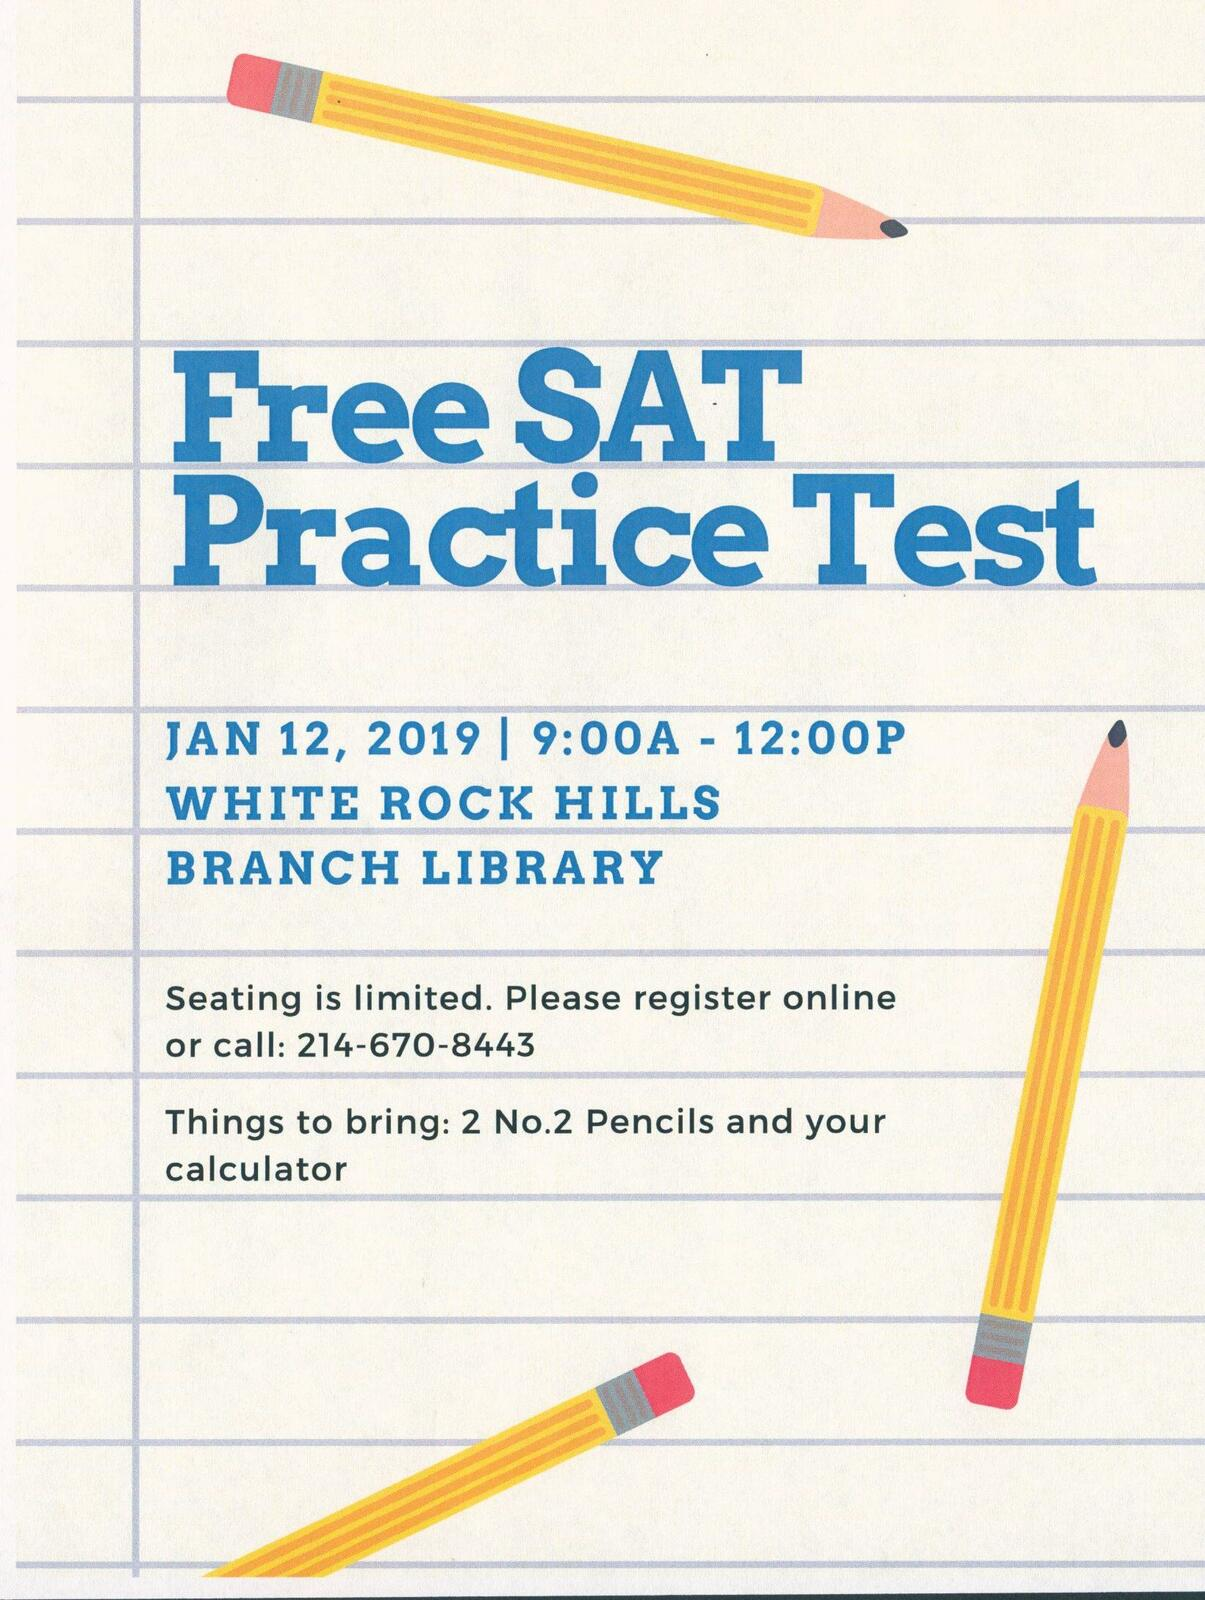 Free SAT Practice Test with c2 Education (Dallas Public Library